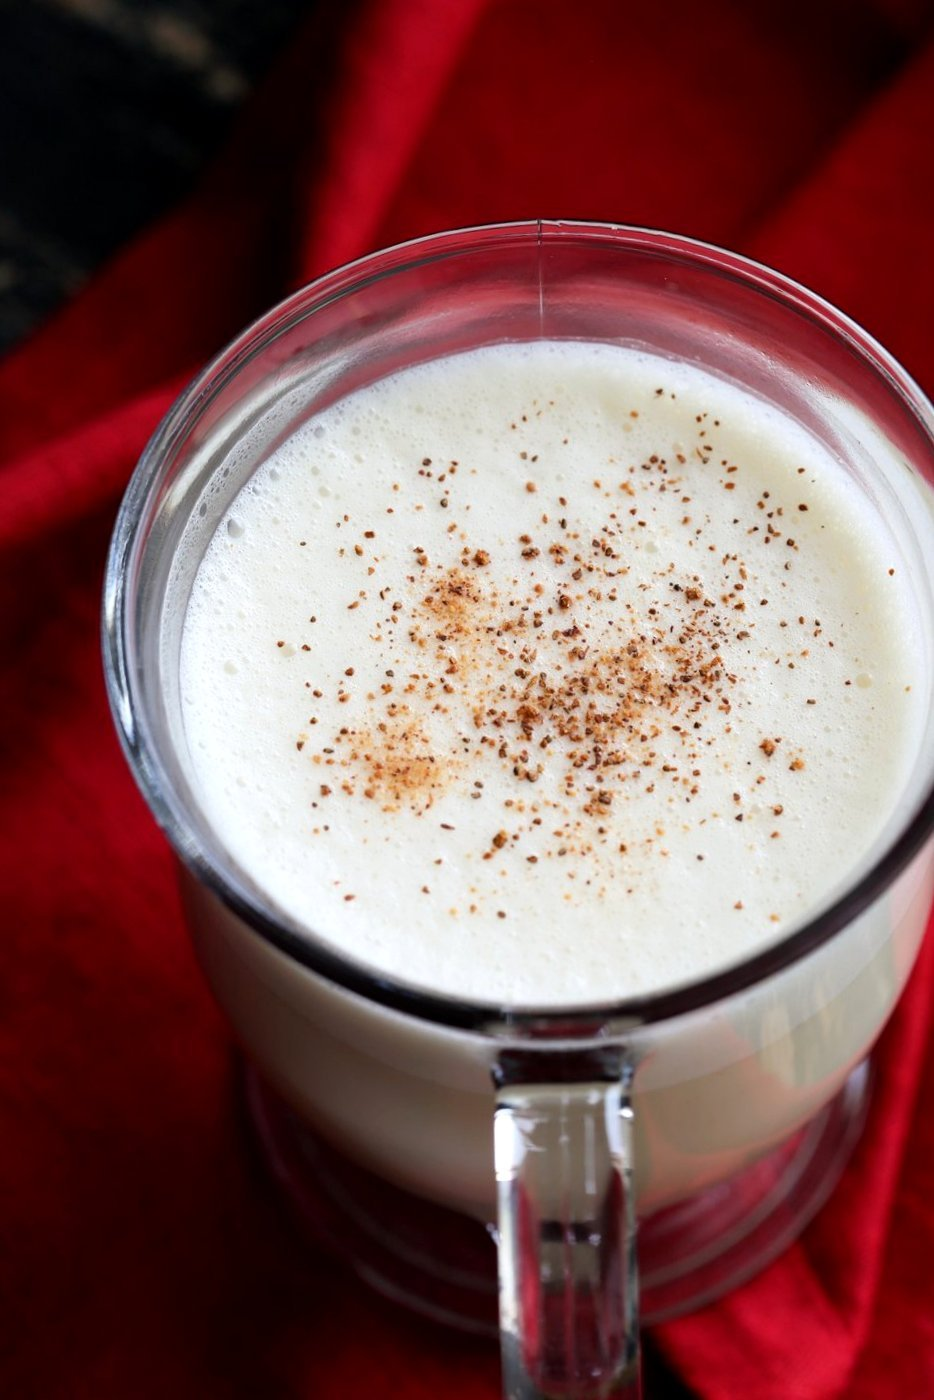 Easy Vegan Eggnog with eggy chickpea flour custard , almond milk, nutmeg, cloves and cinnamon. Make Golden Eggnog with Turmeric or add Cardamom for Chai spice. | VeganRicha.com